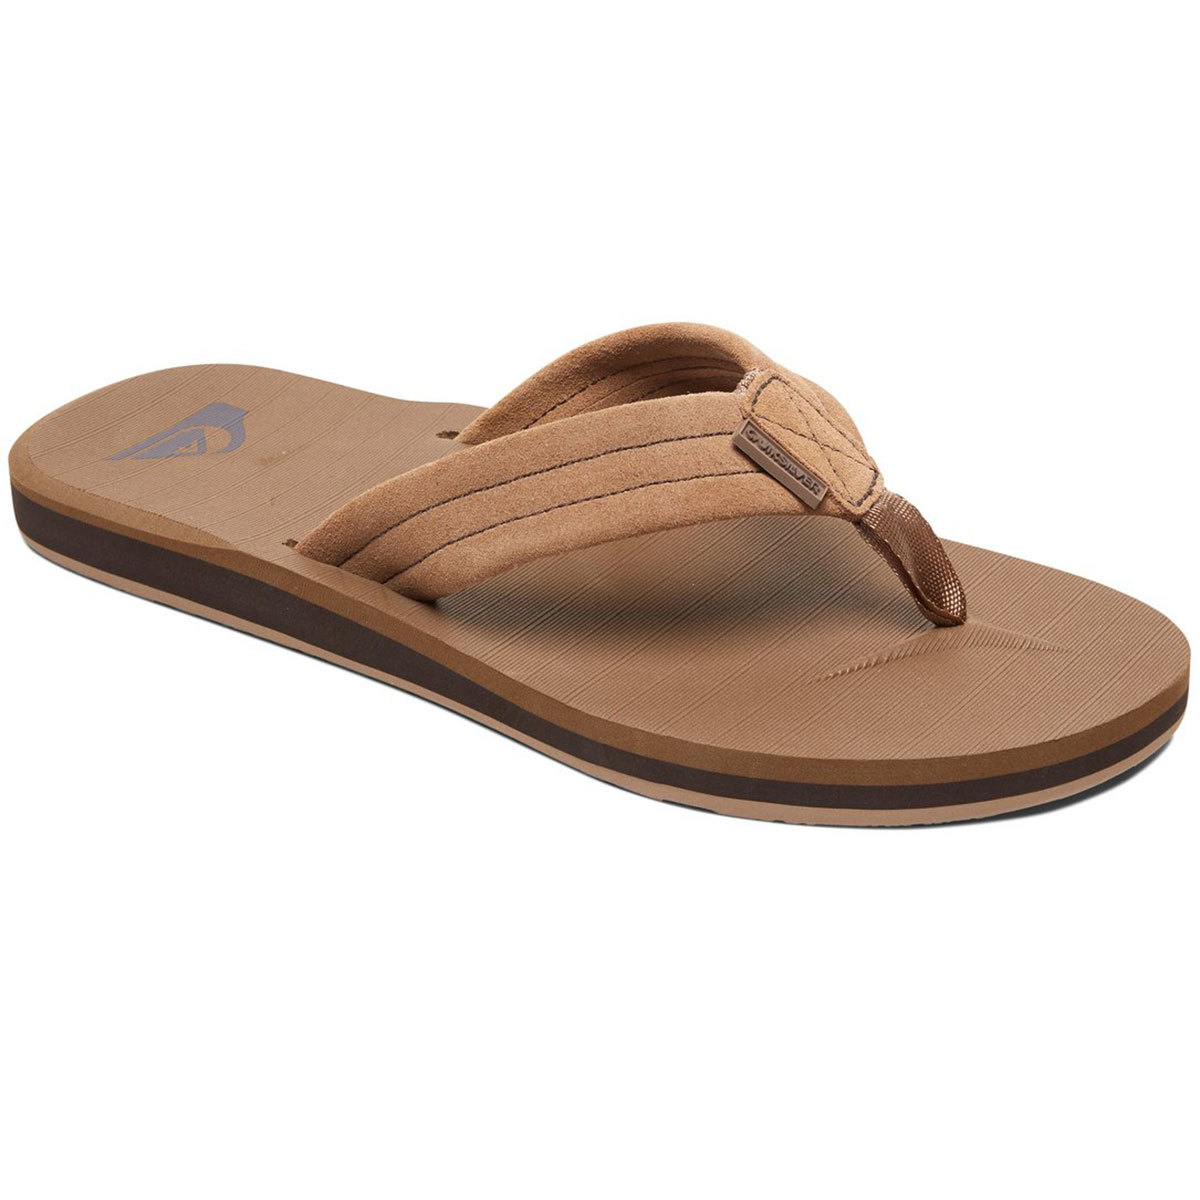 Quiksilver Boys' Carver Flip Flop Sandals - Brown, 4